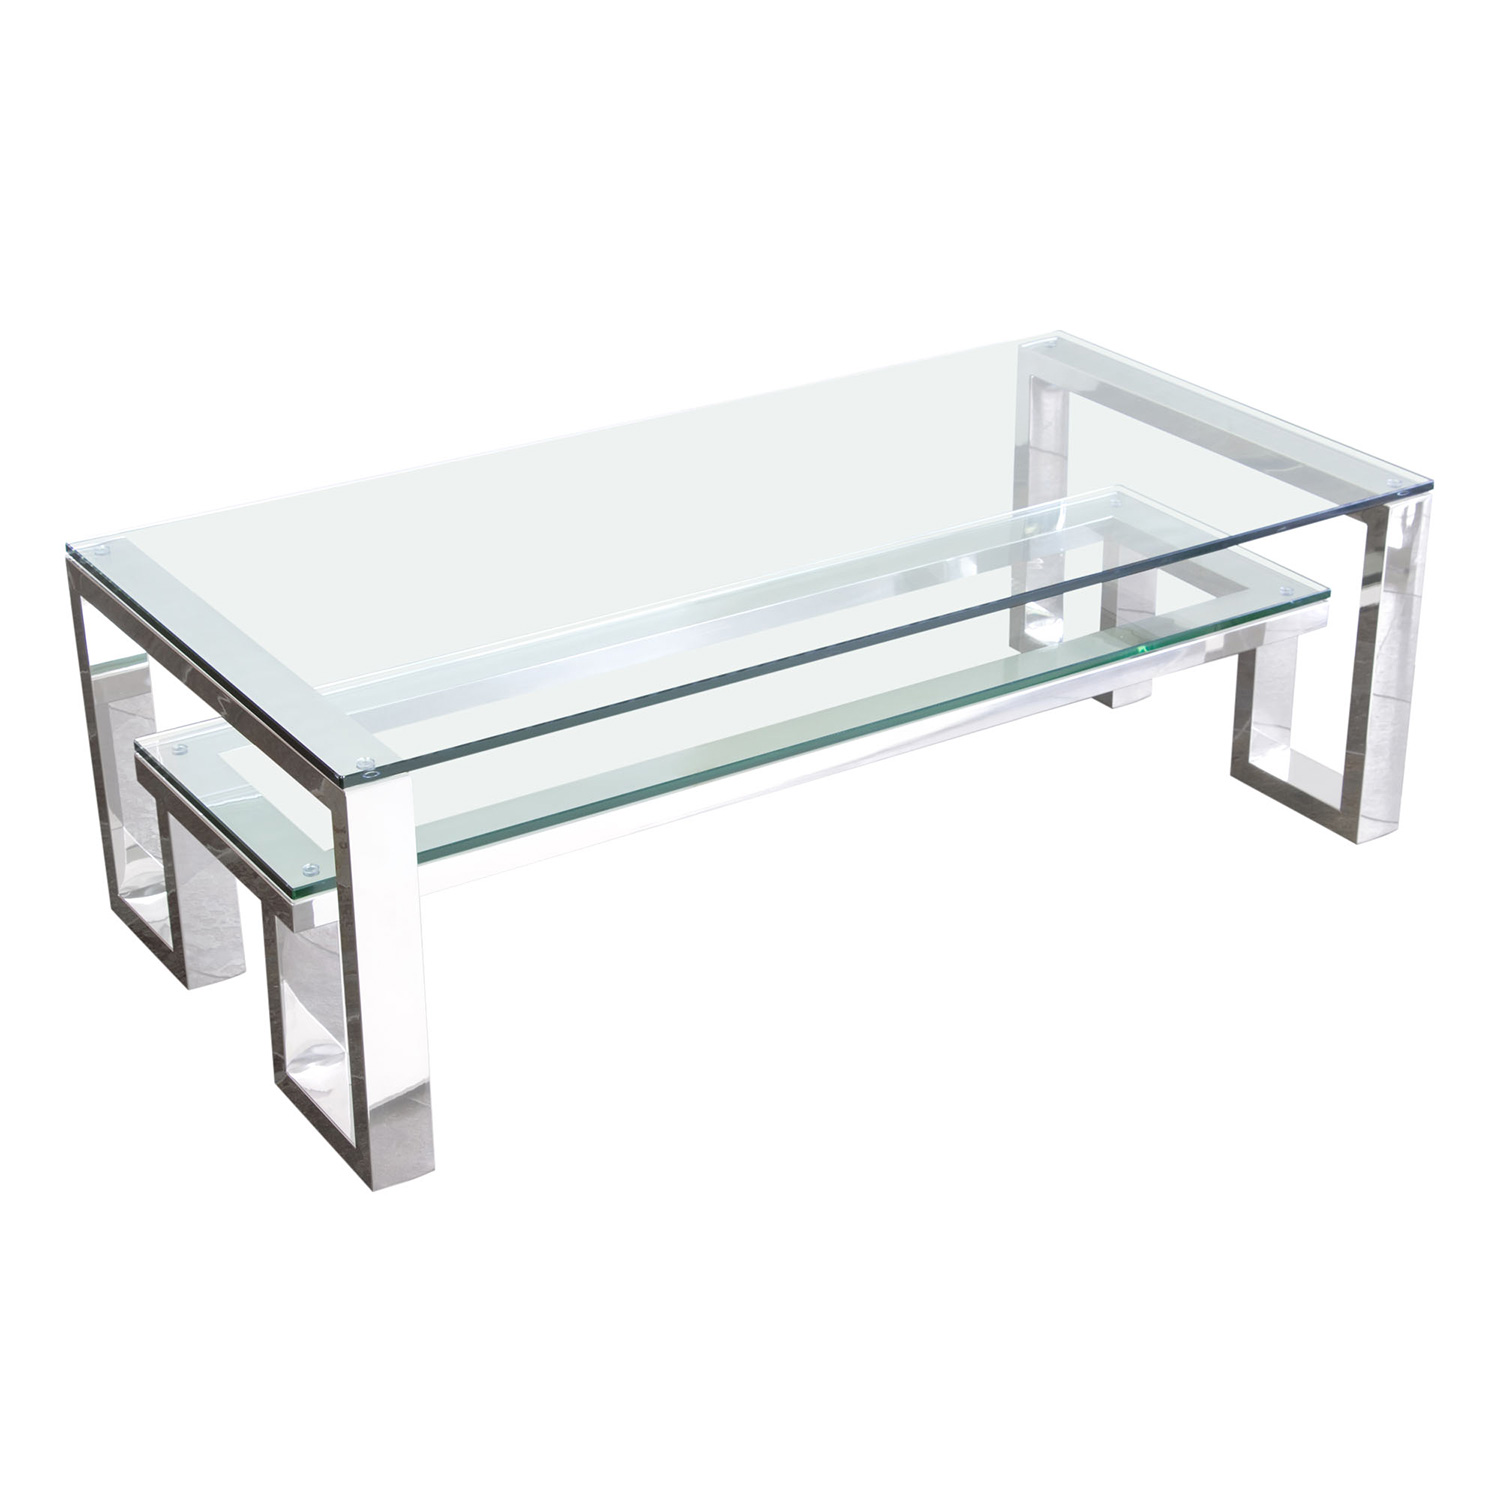 Stainless Steel Coffee Table: CARLSBADCT Carlsbad Cocktail Table W/ Clear Glass Top